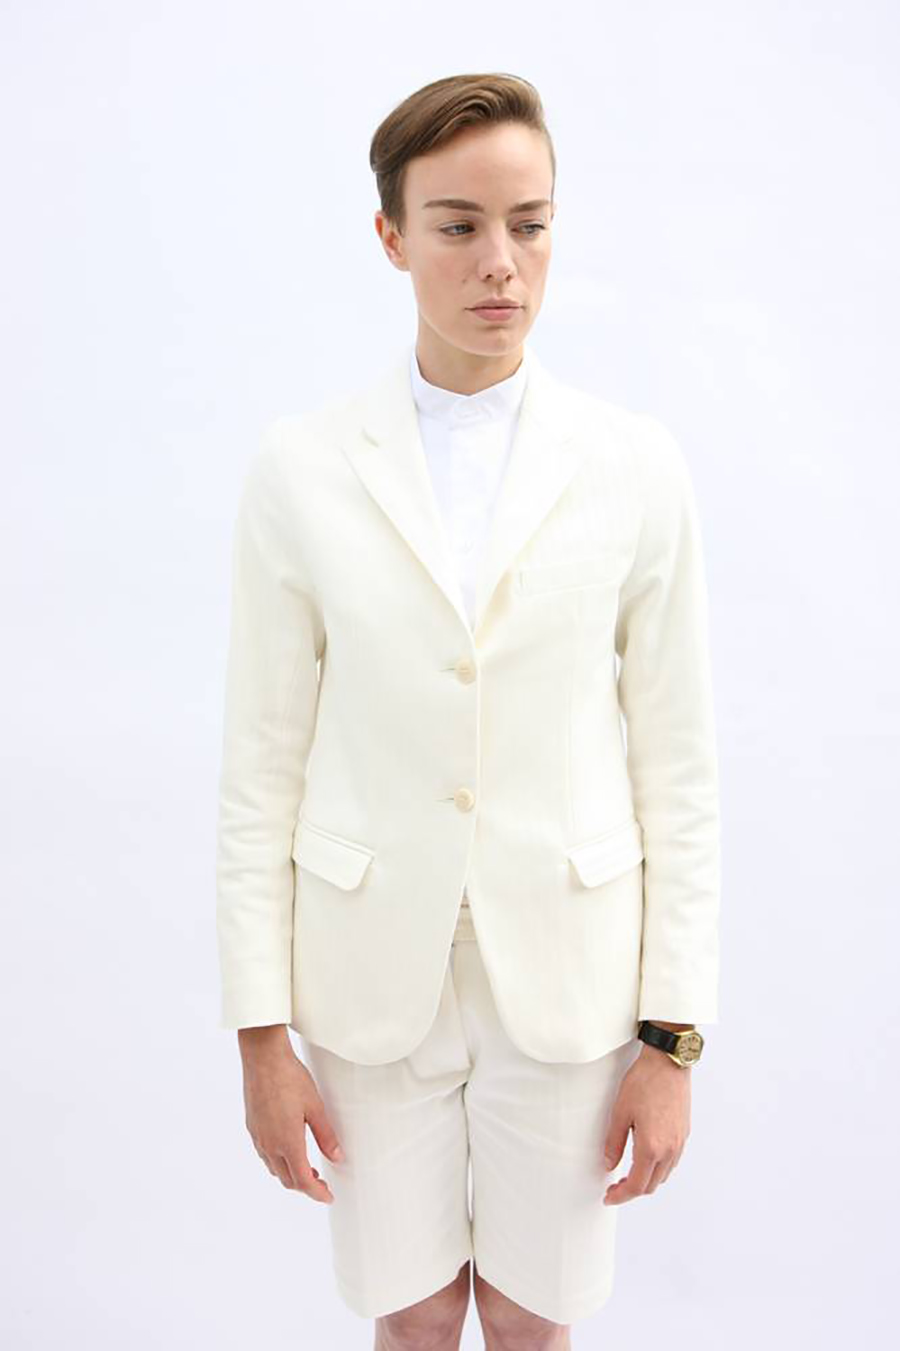 Gatsby shorts suit.jpg